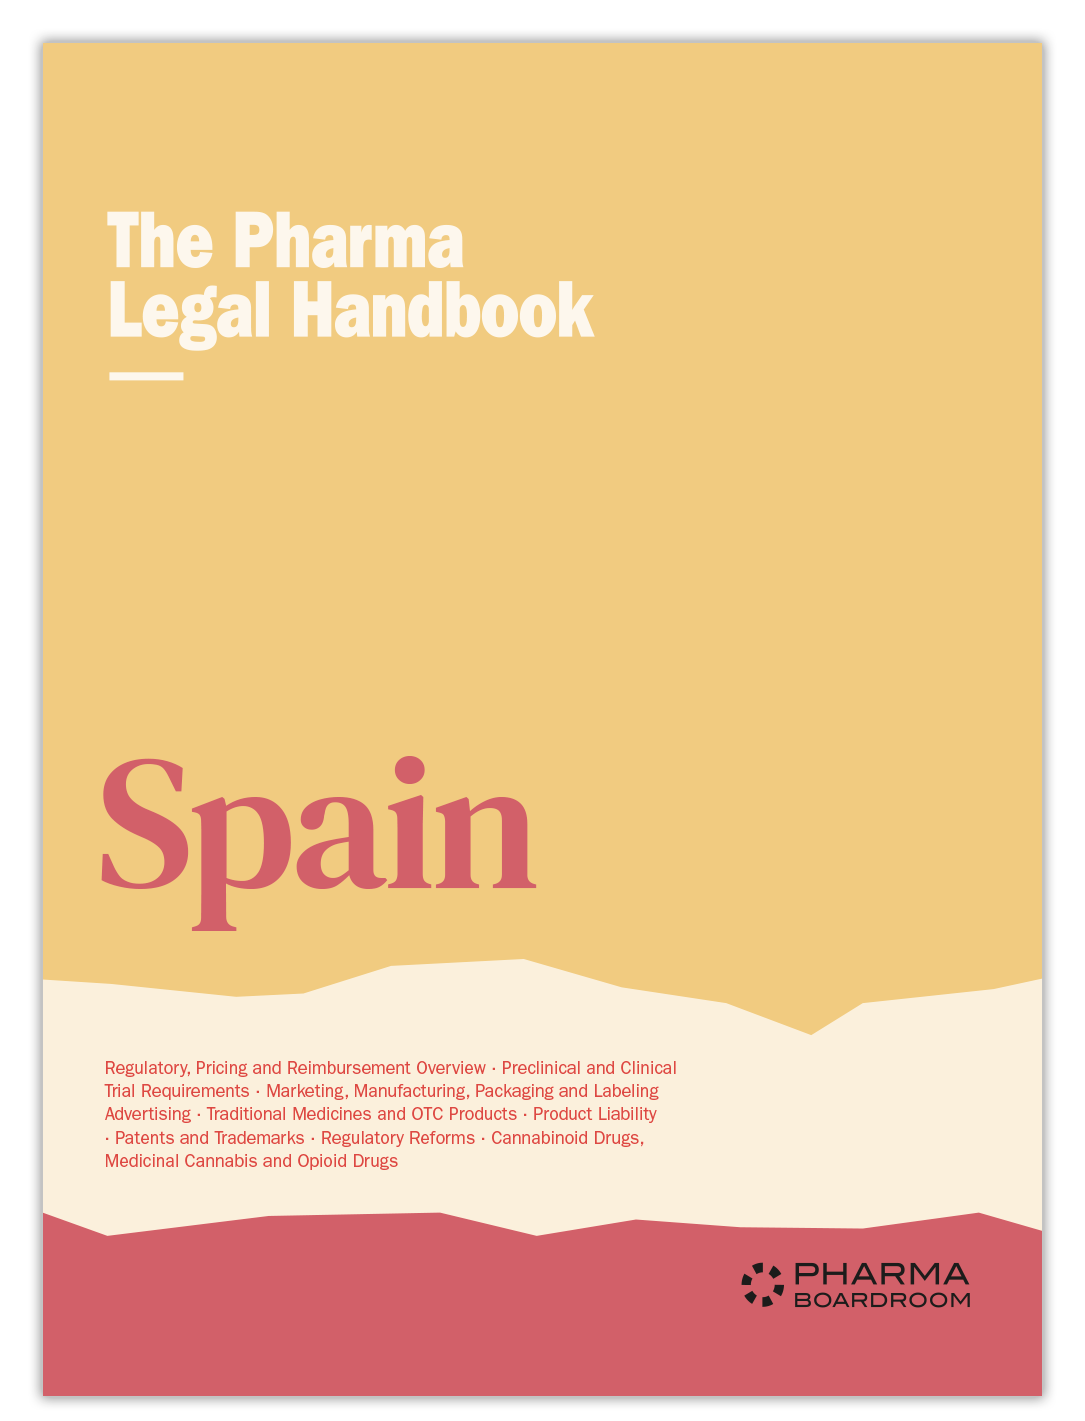 The Pharma Legal Handbook: Spain